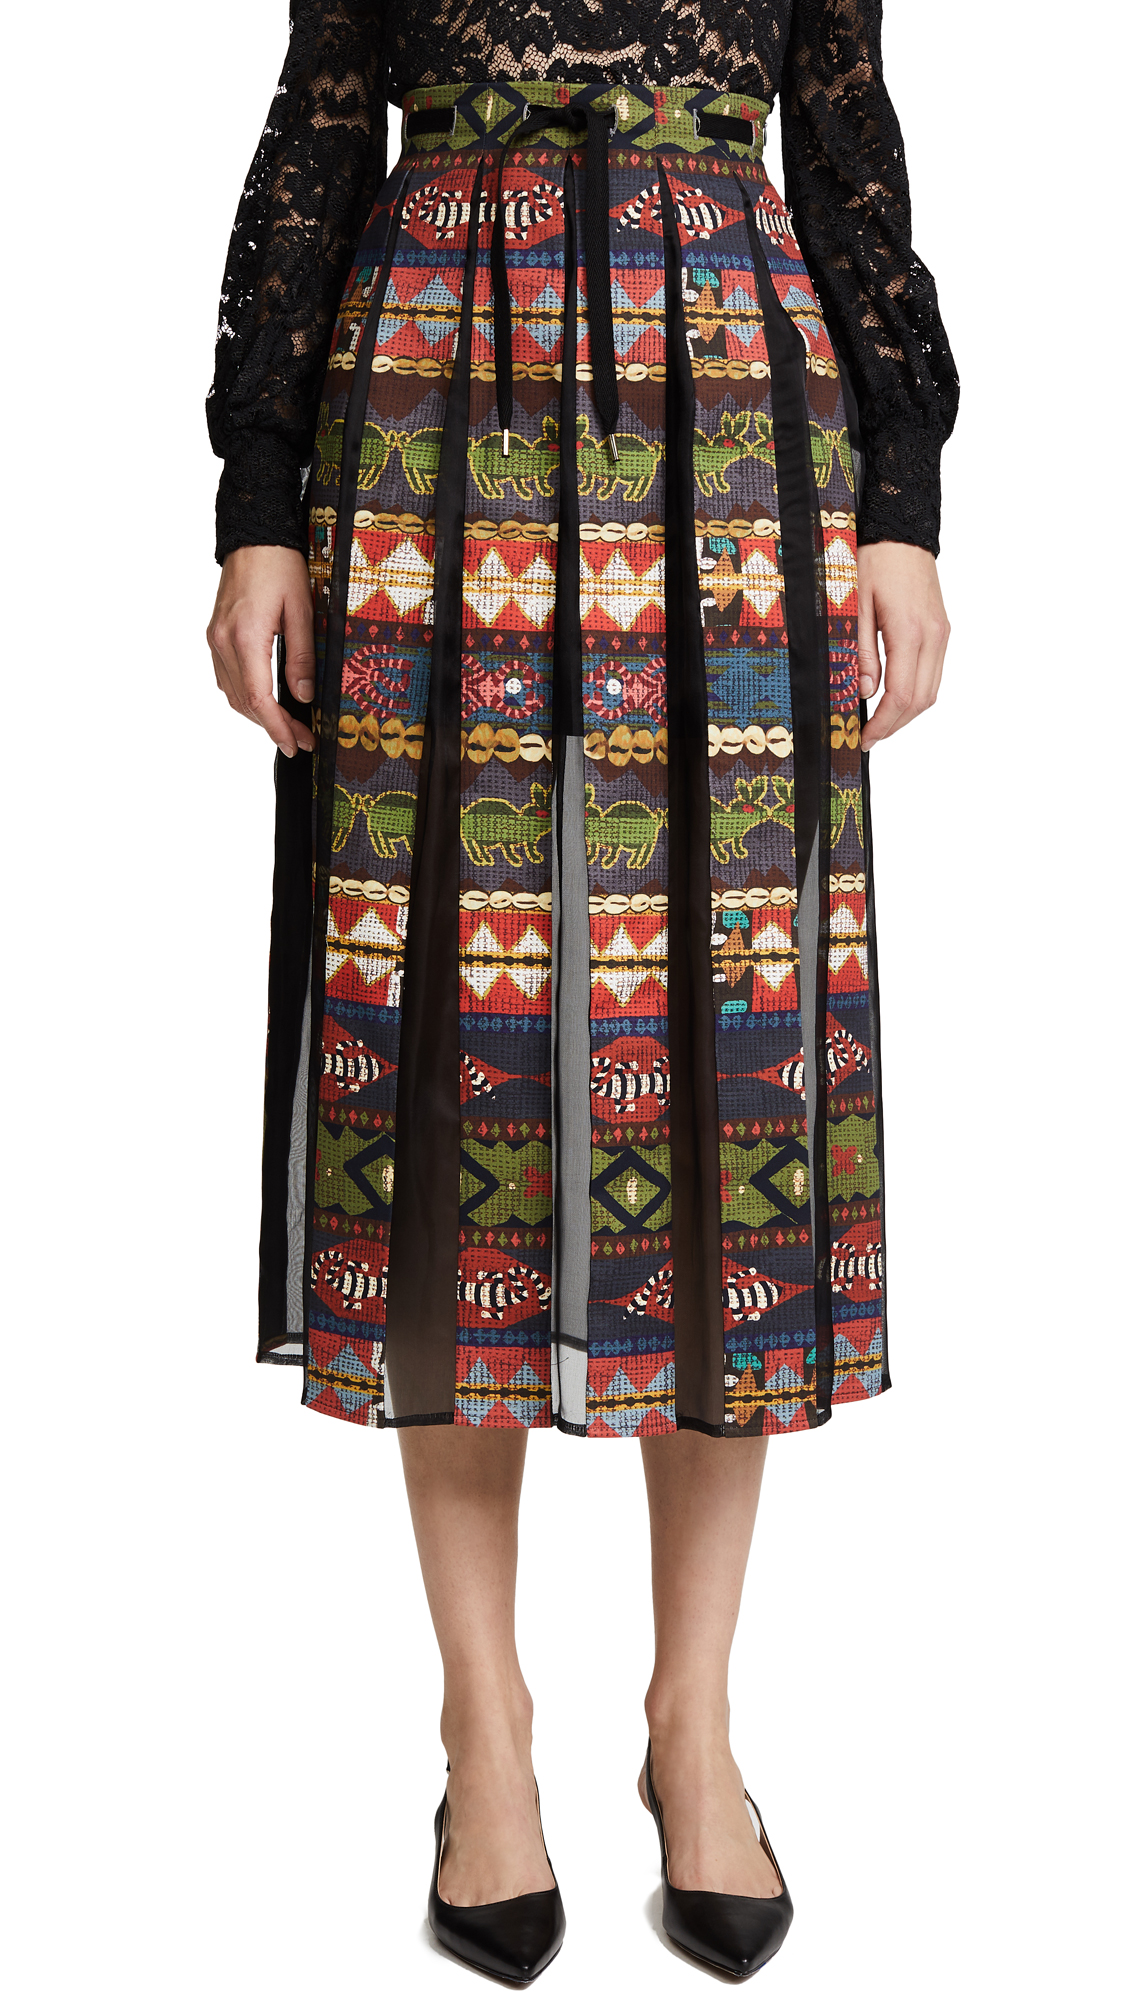 Stella Jean Printed Pleated Inset Skirt - Multi